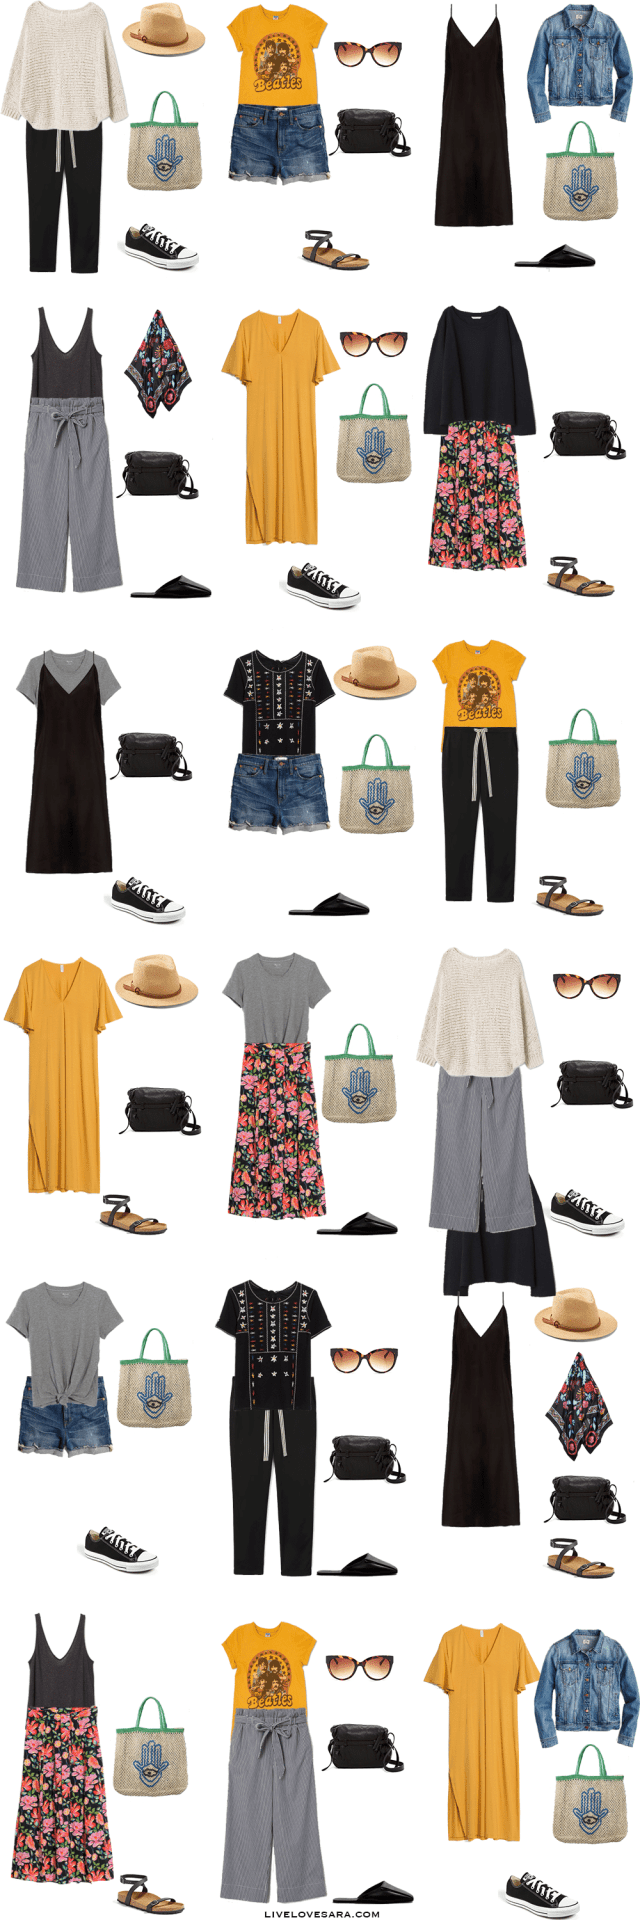 If you are wondering what to pack for a Bulgaria beach vacation for 10 days, you can see some ideas here. What to Pack for Bulgaria Packing Light List Outfit Ideas | What to pack for the Black Sea l | What to Pack for summer | Packing Light | Packing List | Travel Light | Travel Wardrobe | Travel Capsule | Capsule |